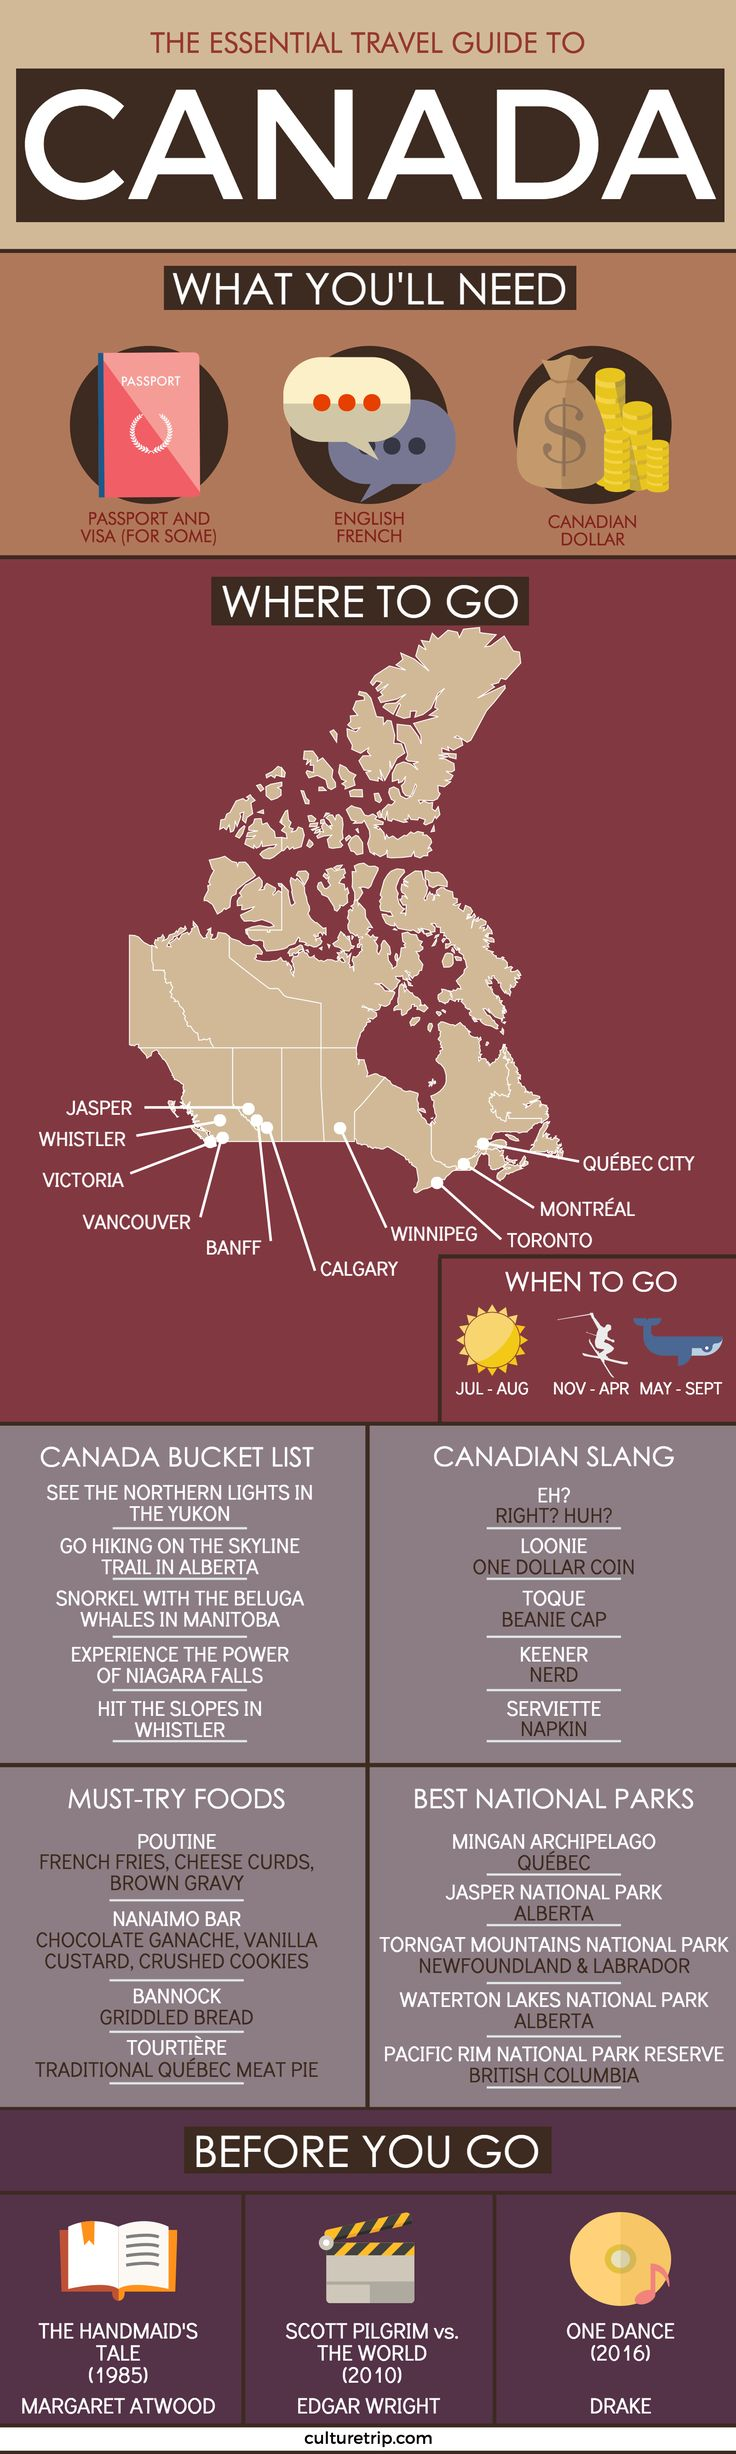 The Ultimate Travel Guide To Canada.